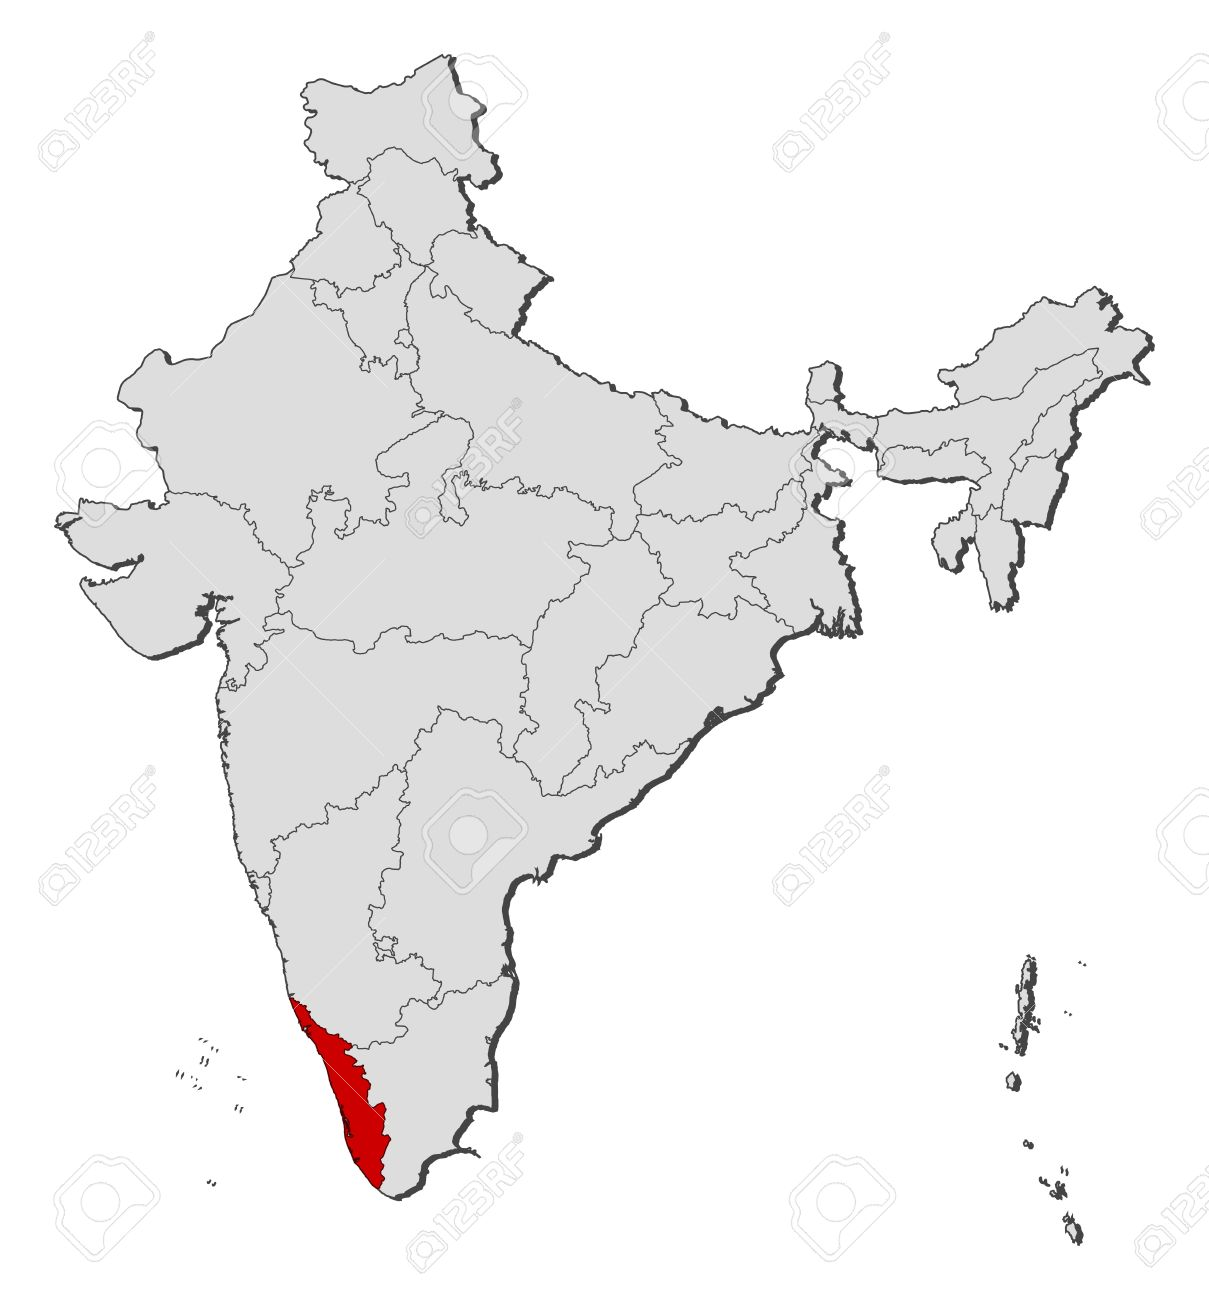 Political Map Of India With The Several States Where Kerala Is